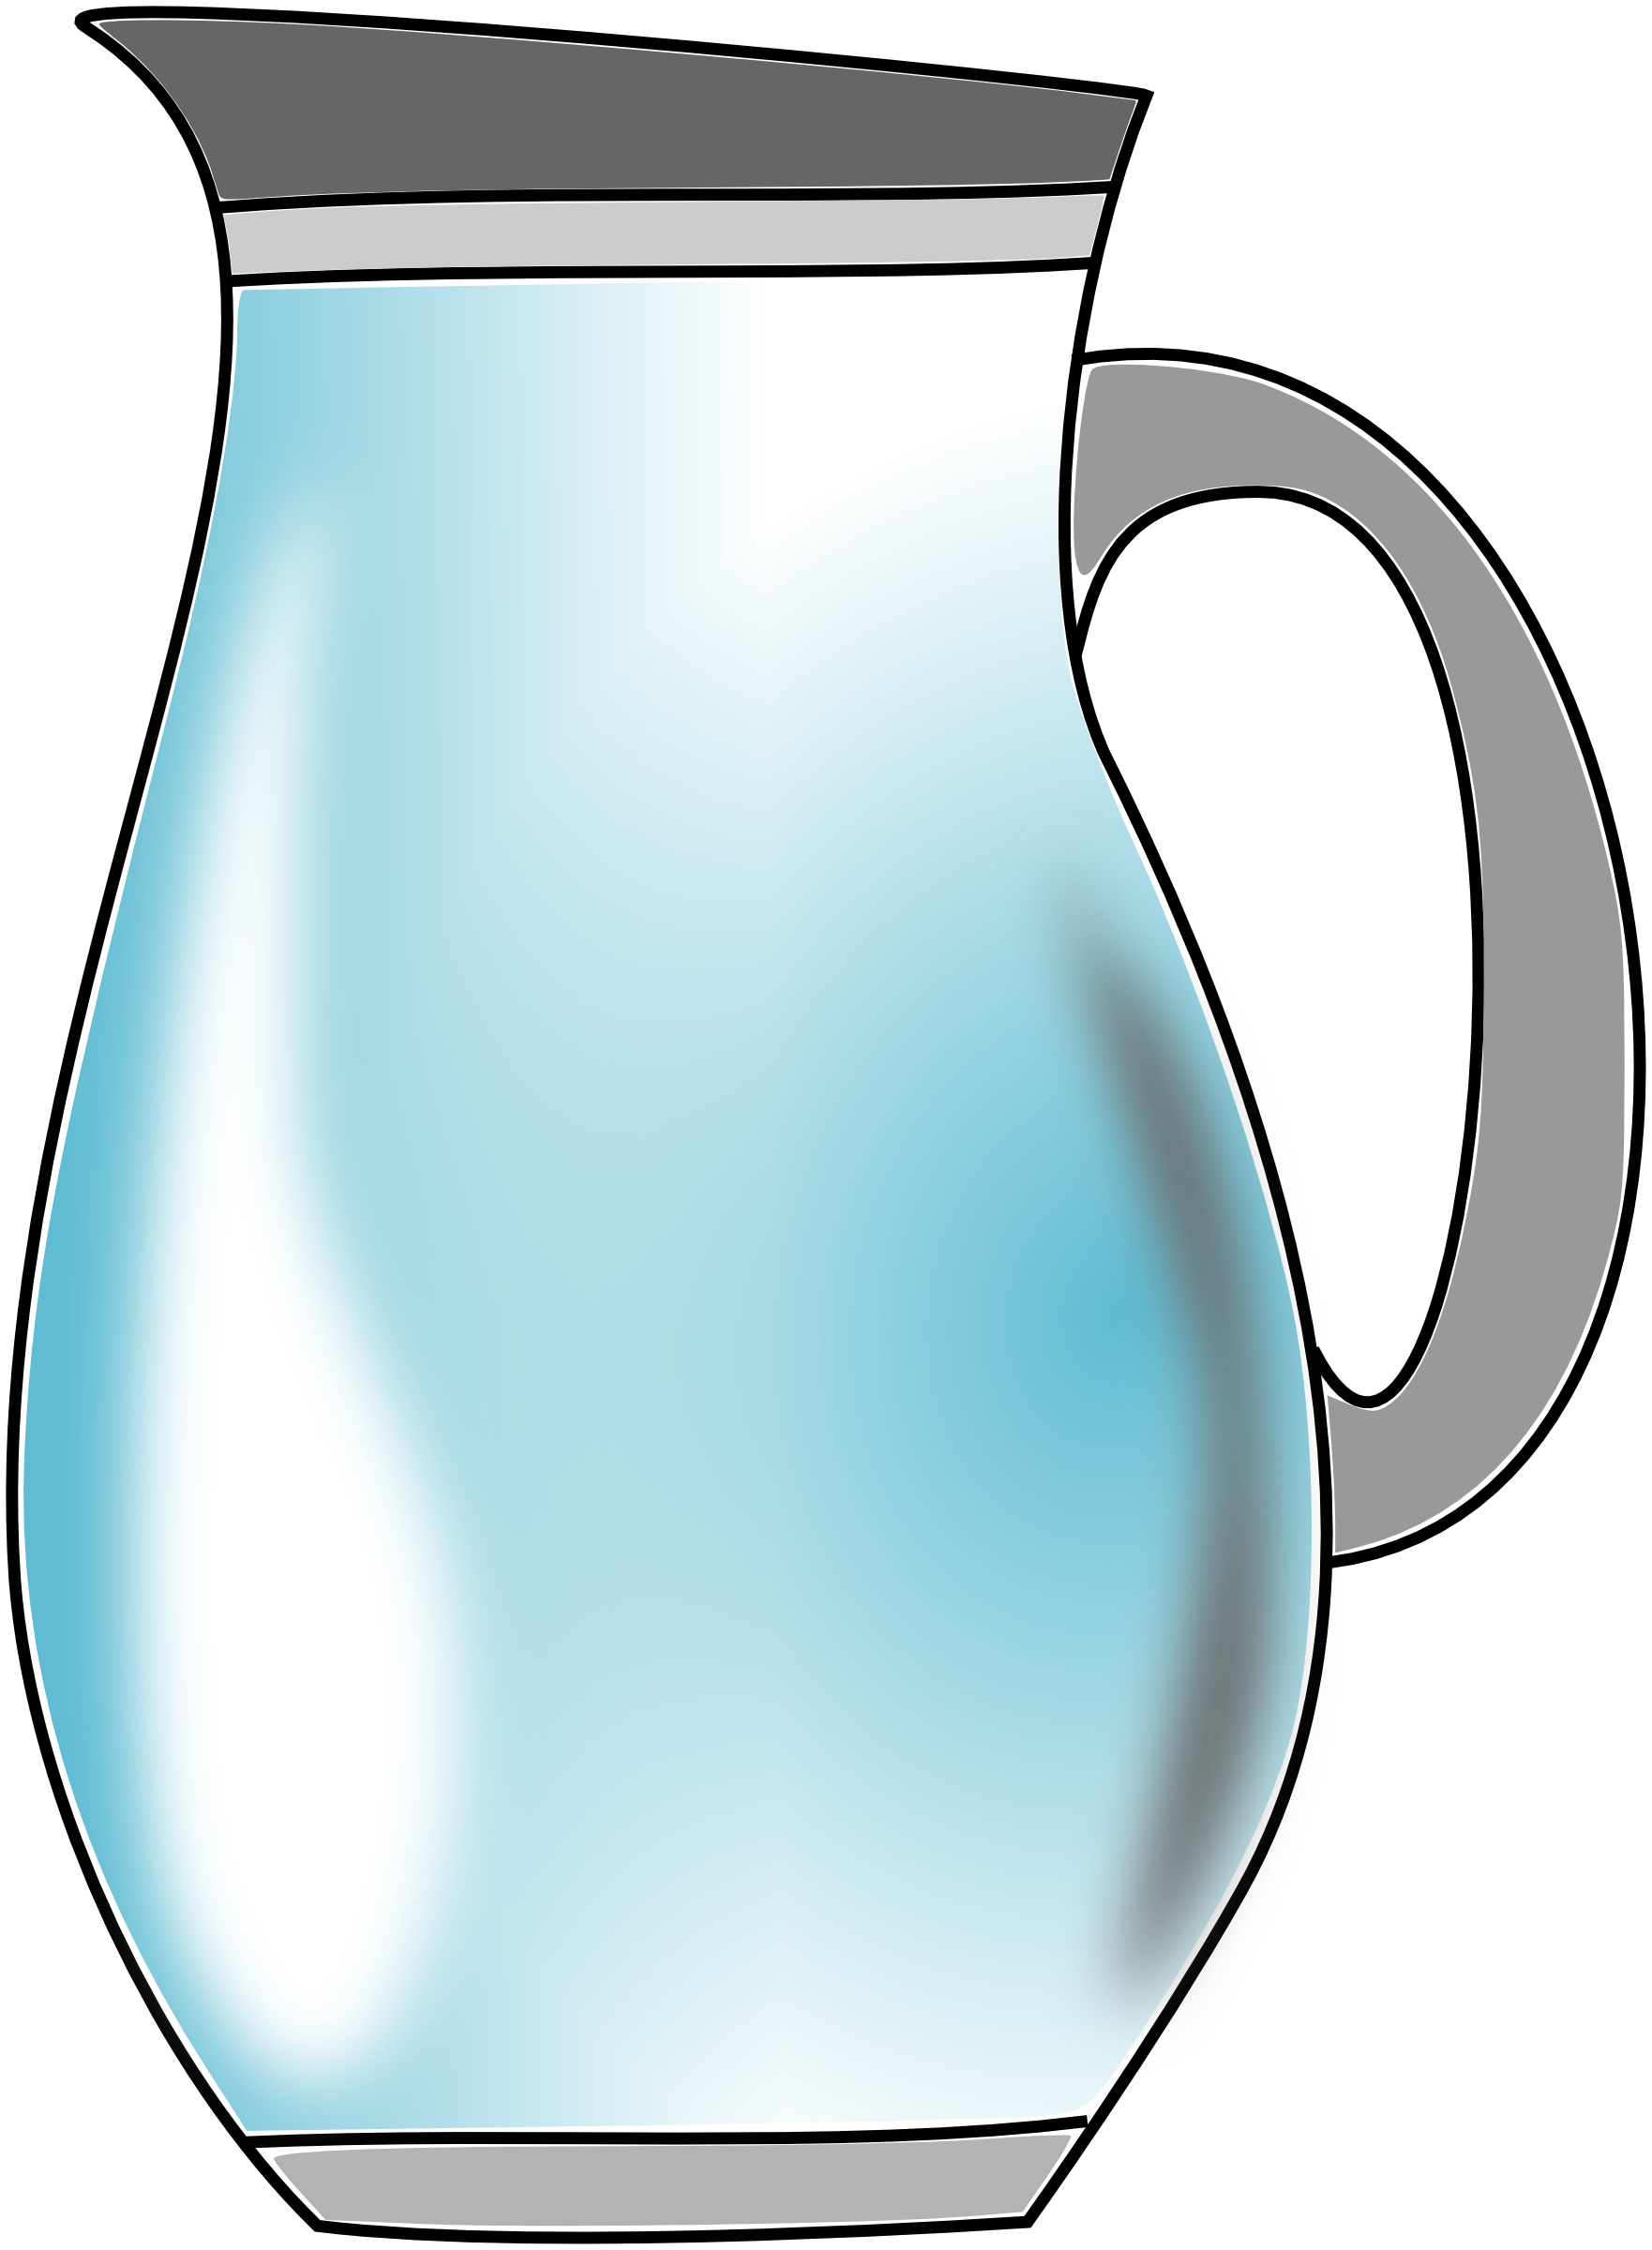 Water cross clipart picture black and white Pitcher Of Water Clipart | Clipart Panda - Free Clipart Images picture black and white